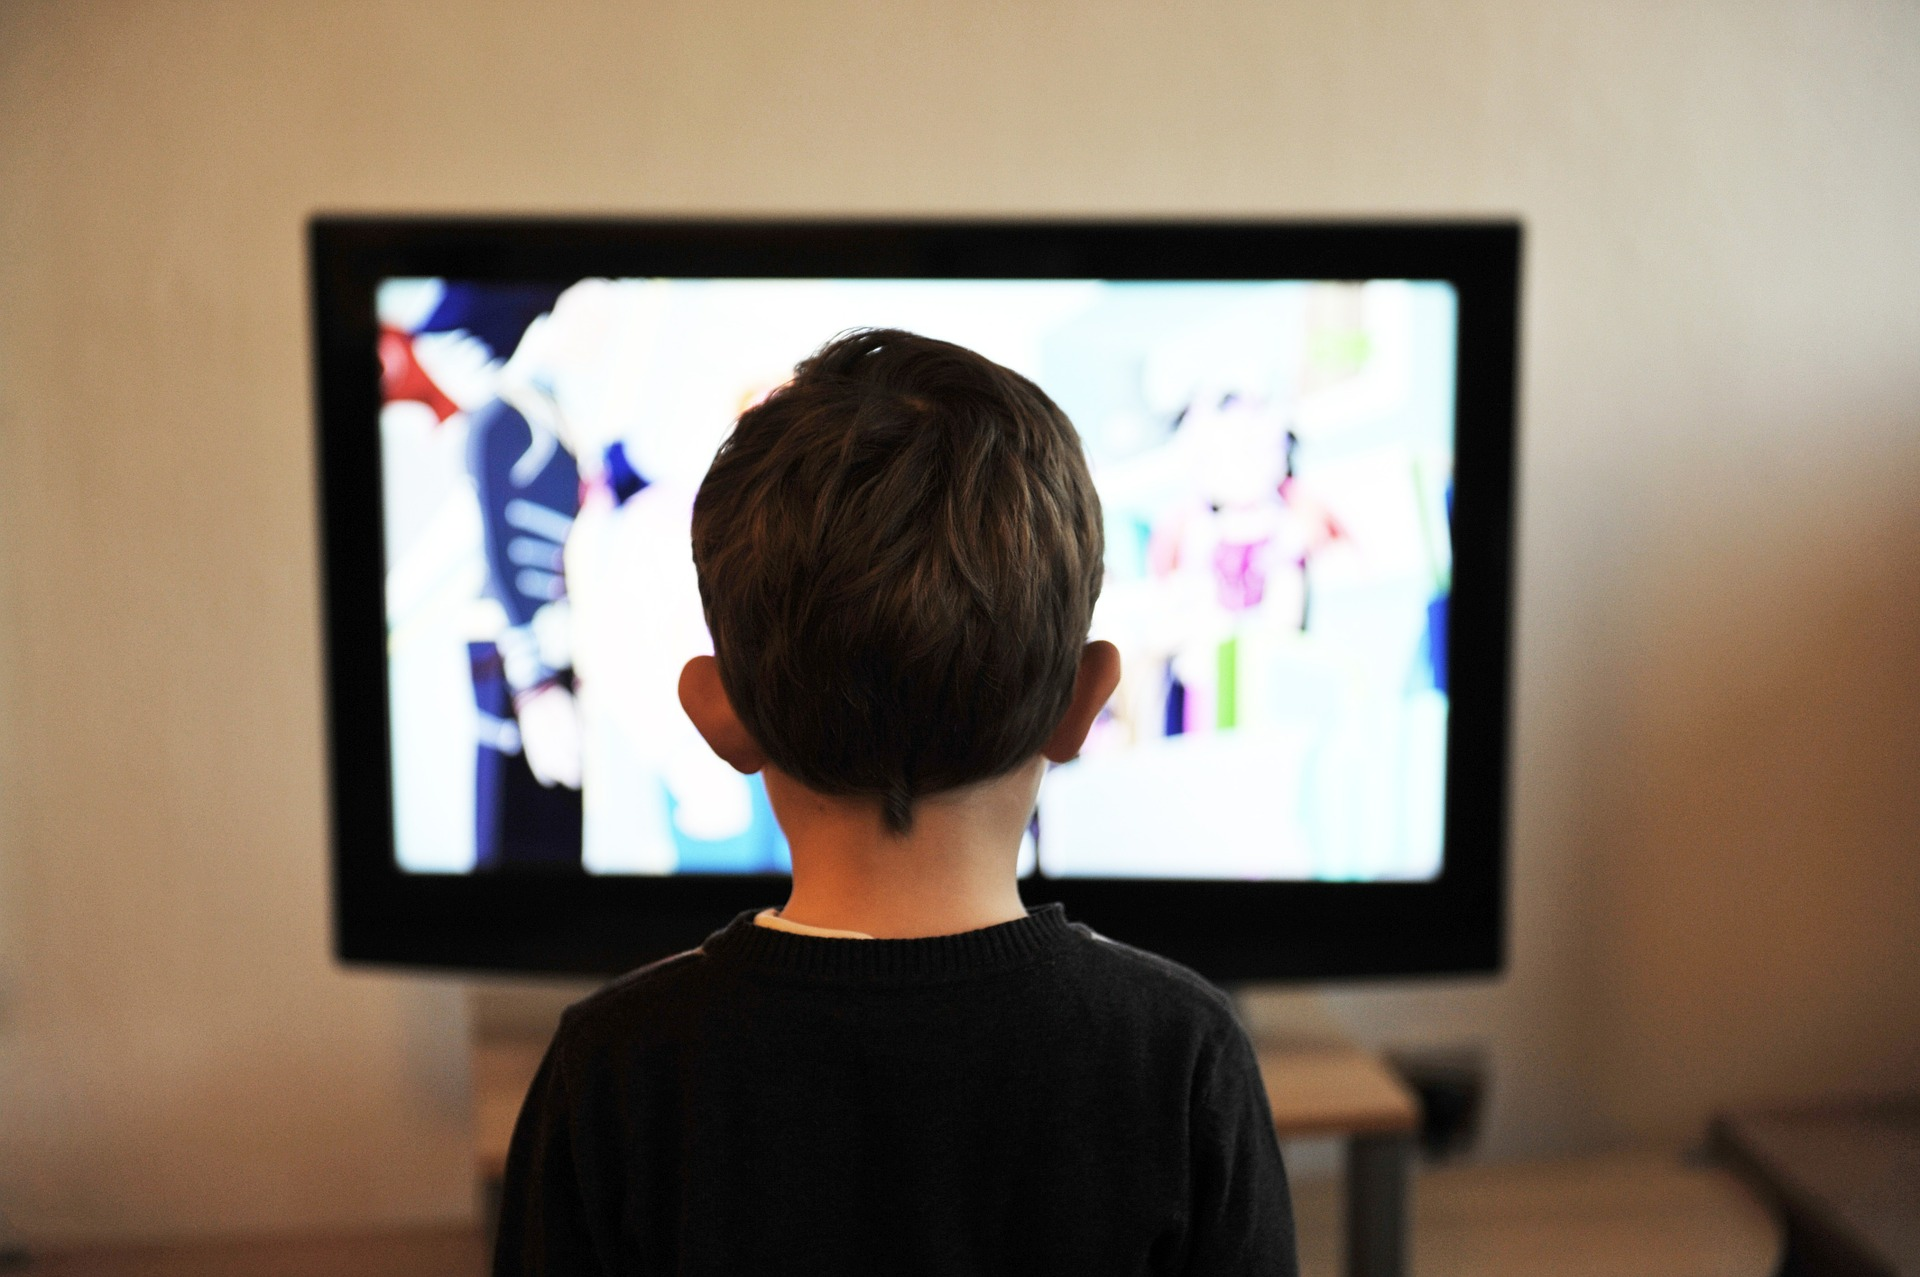 What should I let my kids watch? #crowdparenting